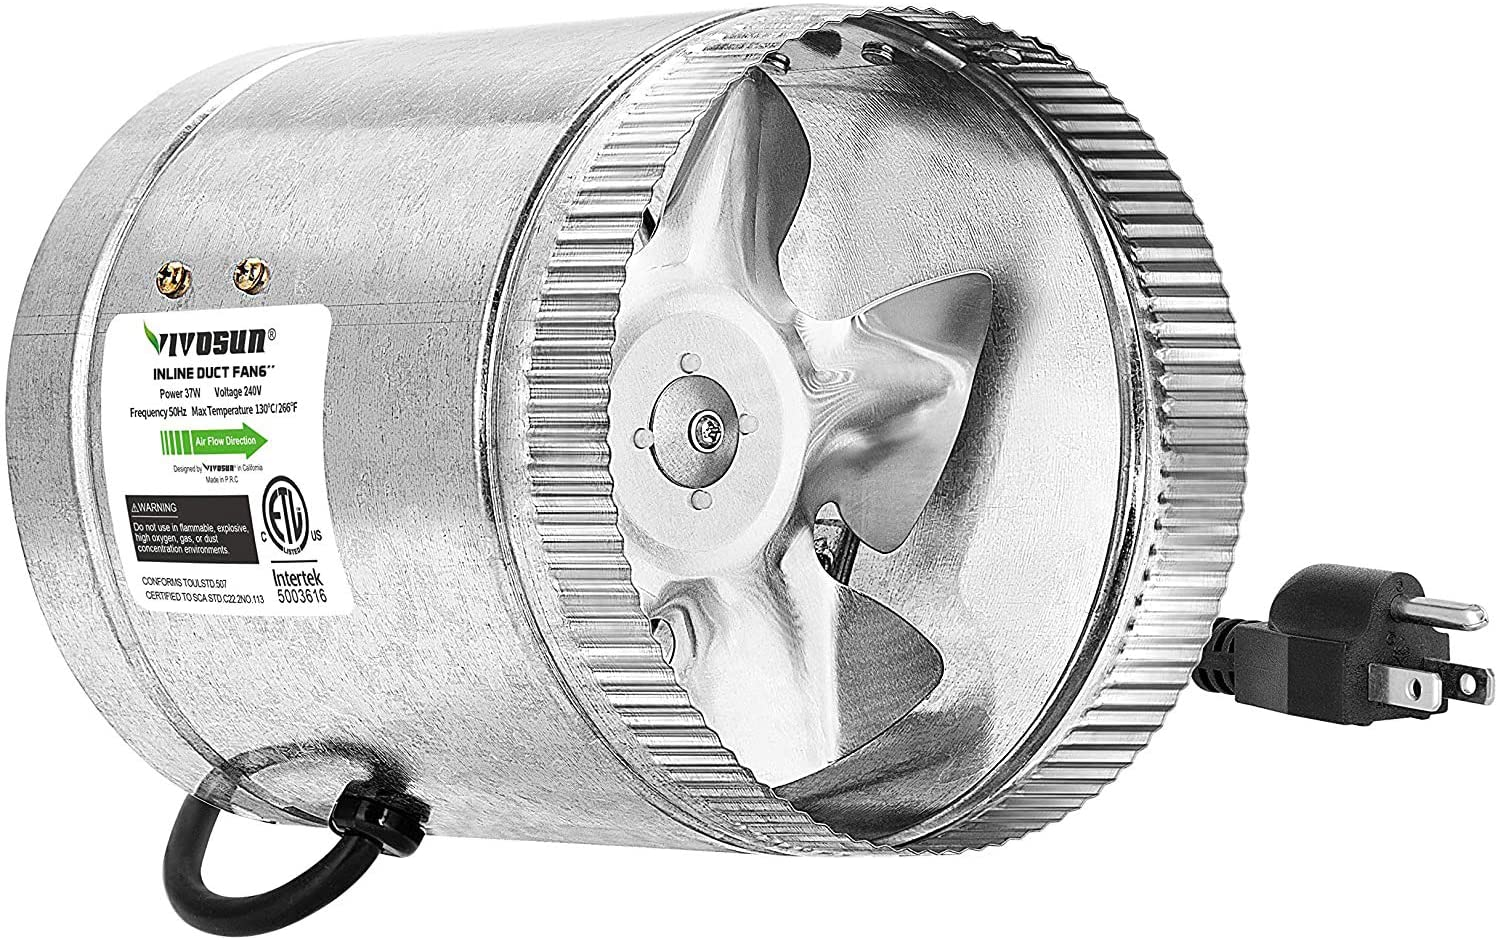 6 inch inline duct fan 240 cfm hvac exhaust intake fan low noise extra long 5 5 grounded power cord walmart com